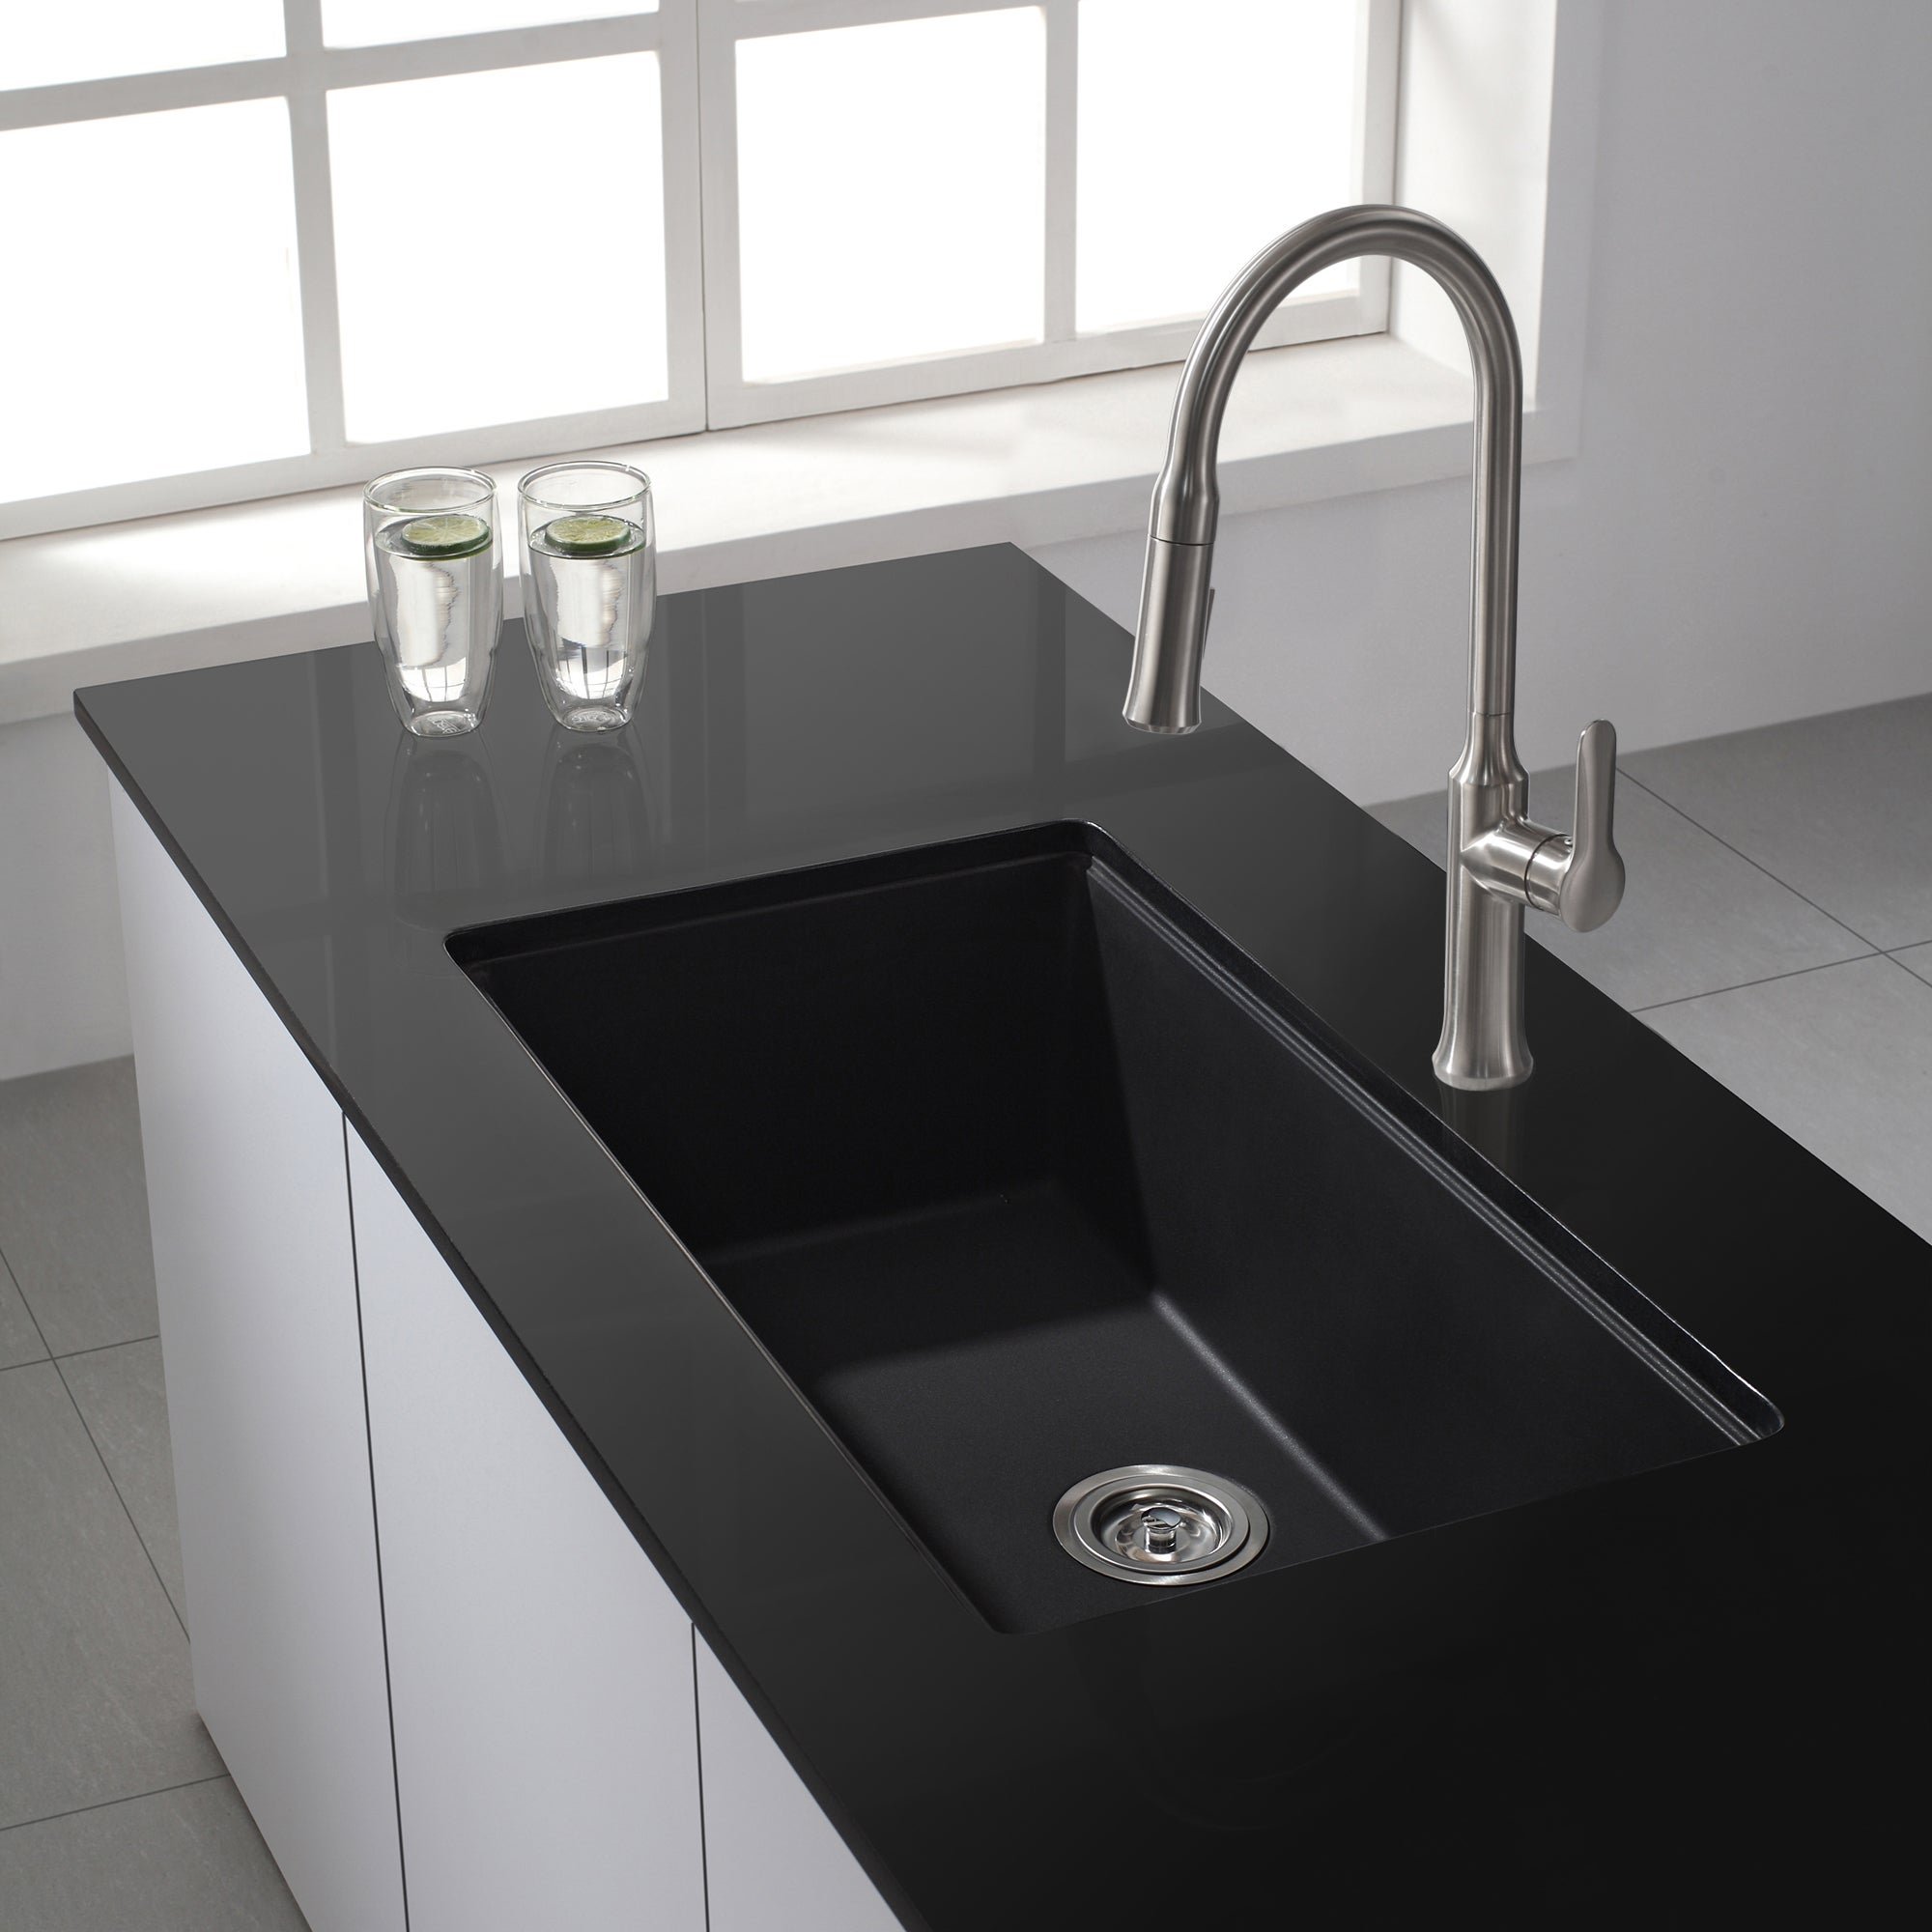 Shop Kraus 31-inch Undermount Single Bowl Sink w/ Pull Down Faucet ...